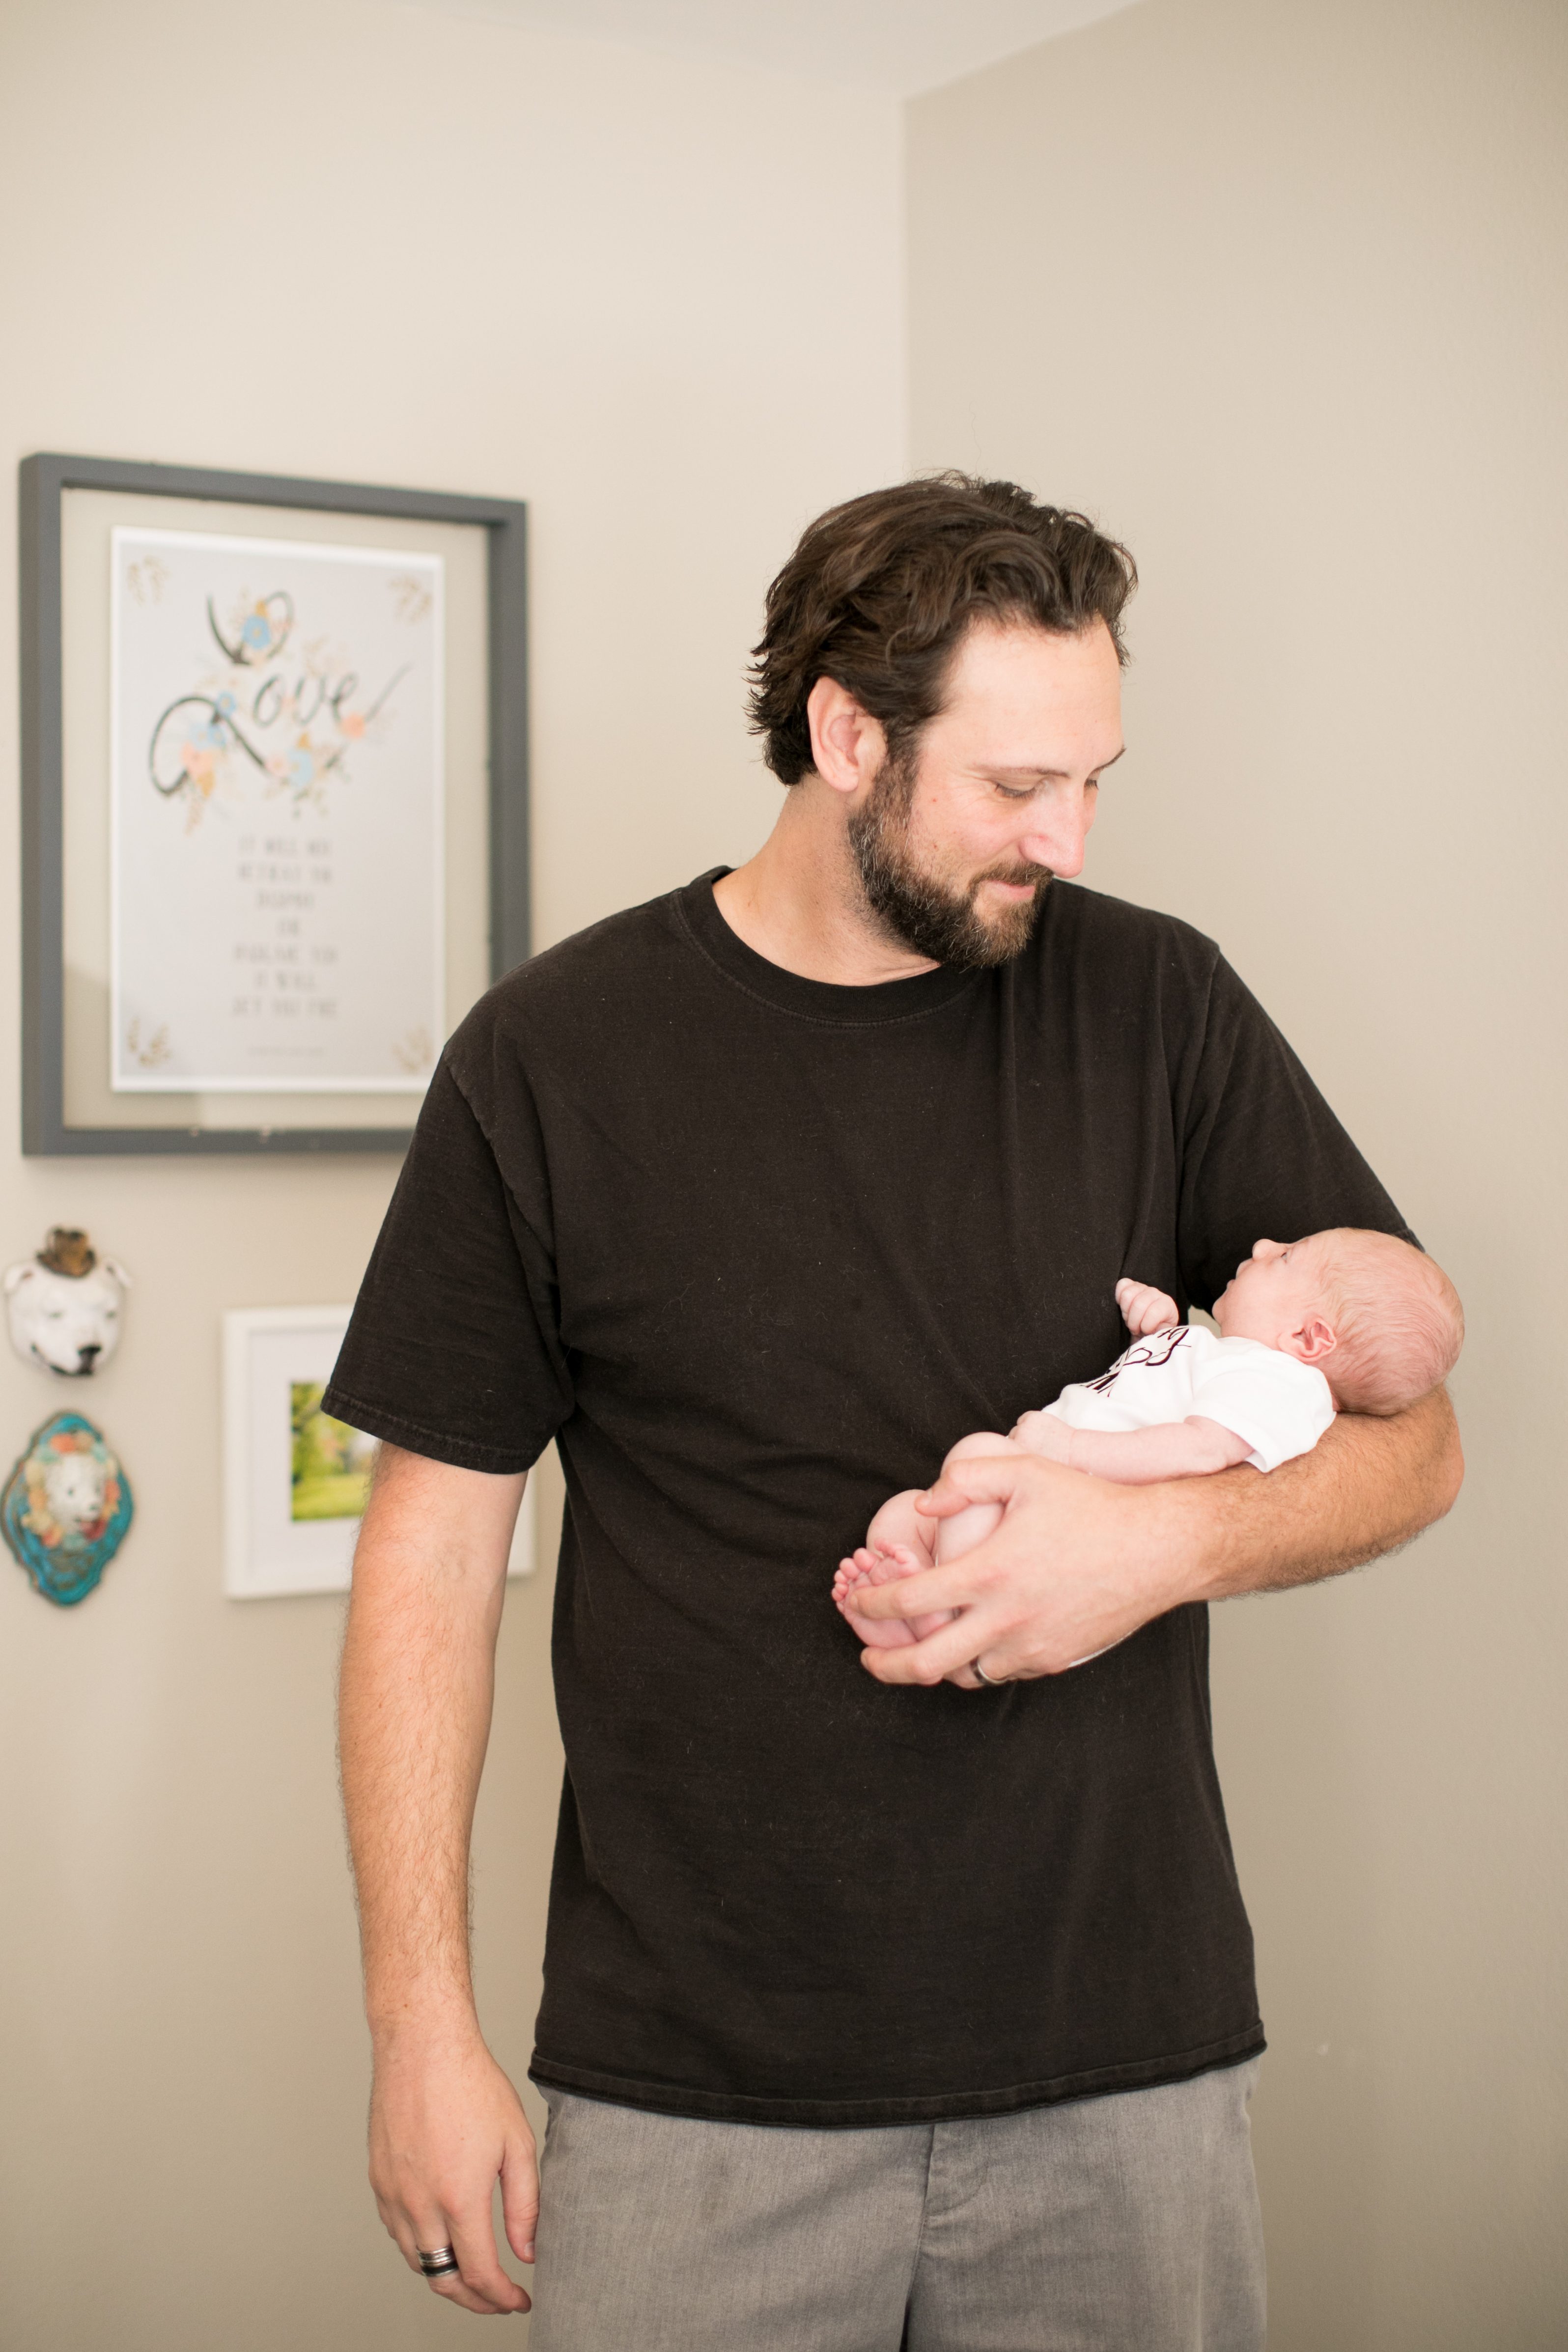 RELish By Arielle's husband Phil Galanty with new baby Naiya Lennon